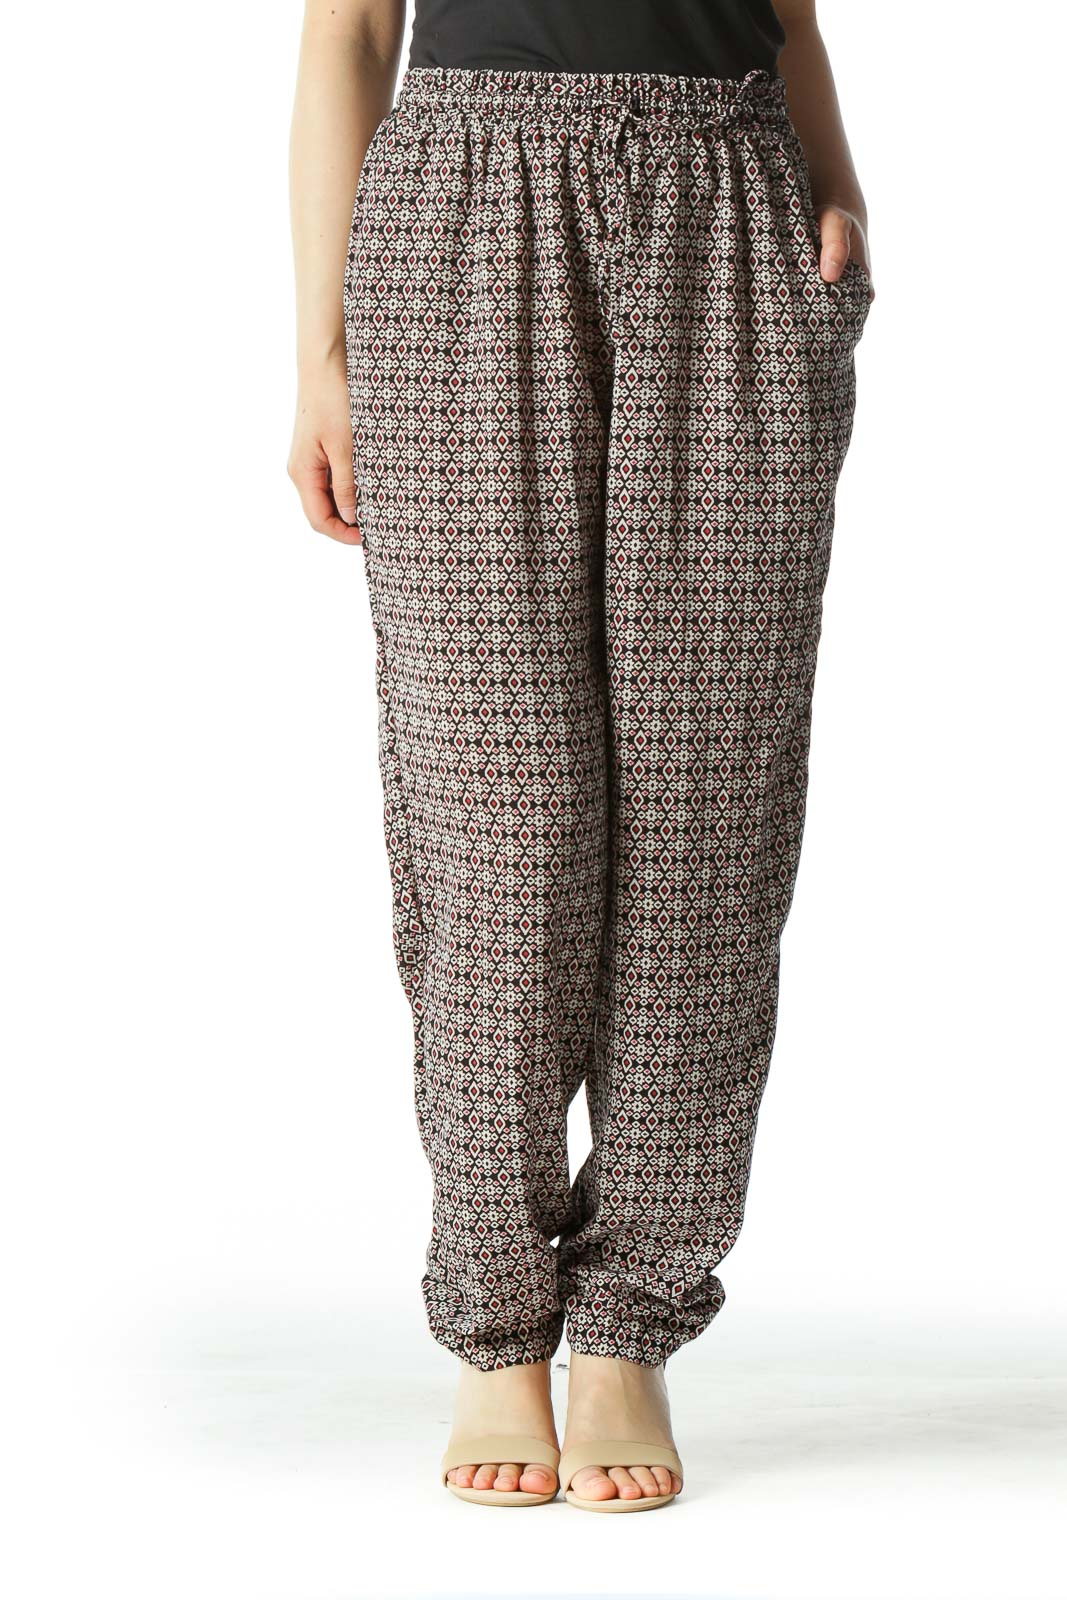 Multicolored Graphic Print High-Waisted Gaucho Pants Front